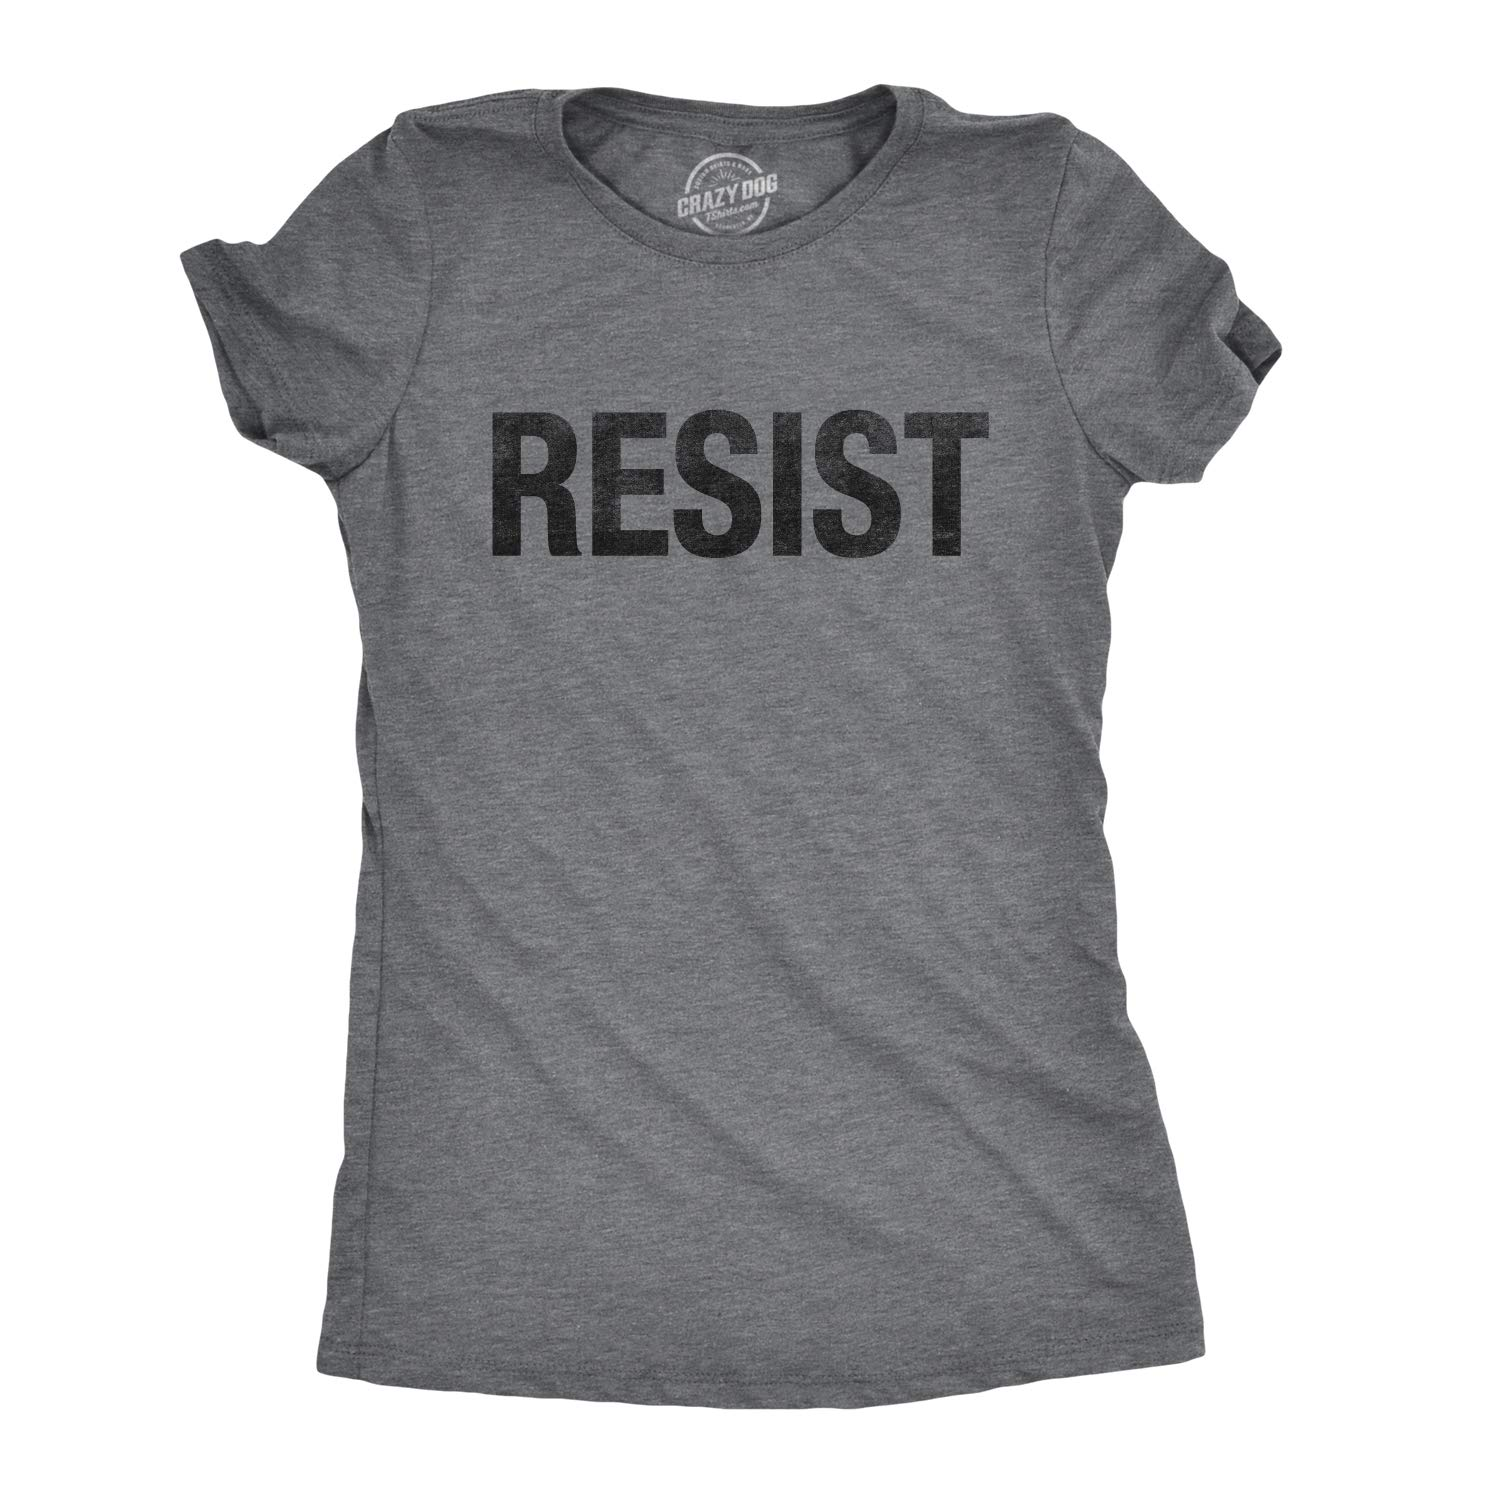 Resist Tee United States Of America Protest Rebel Political T Shirt